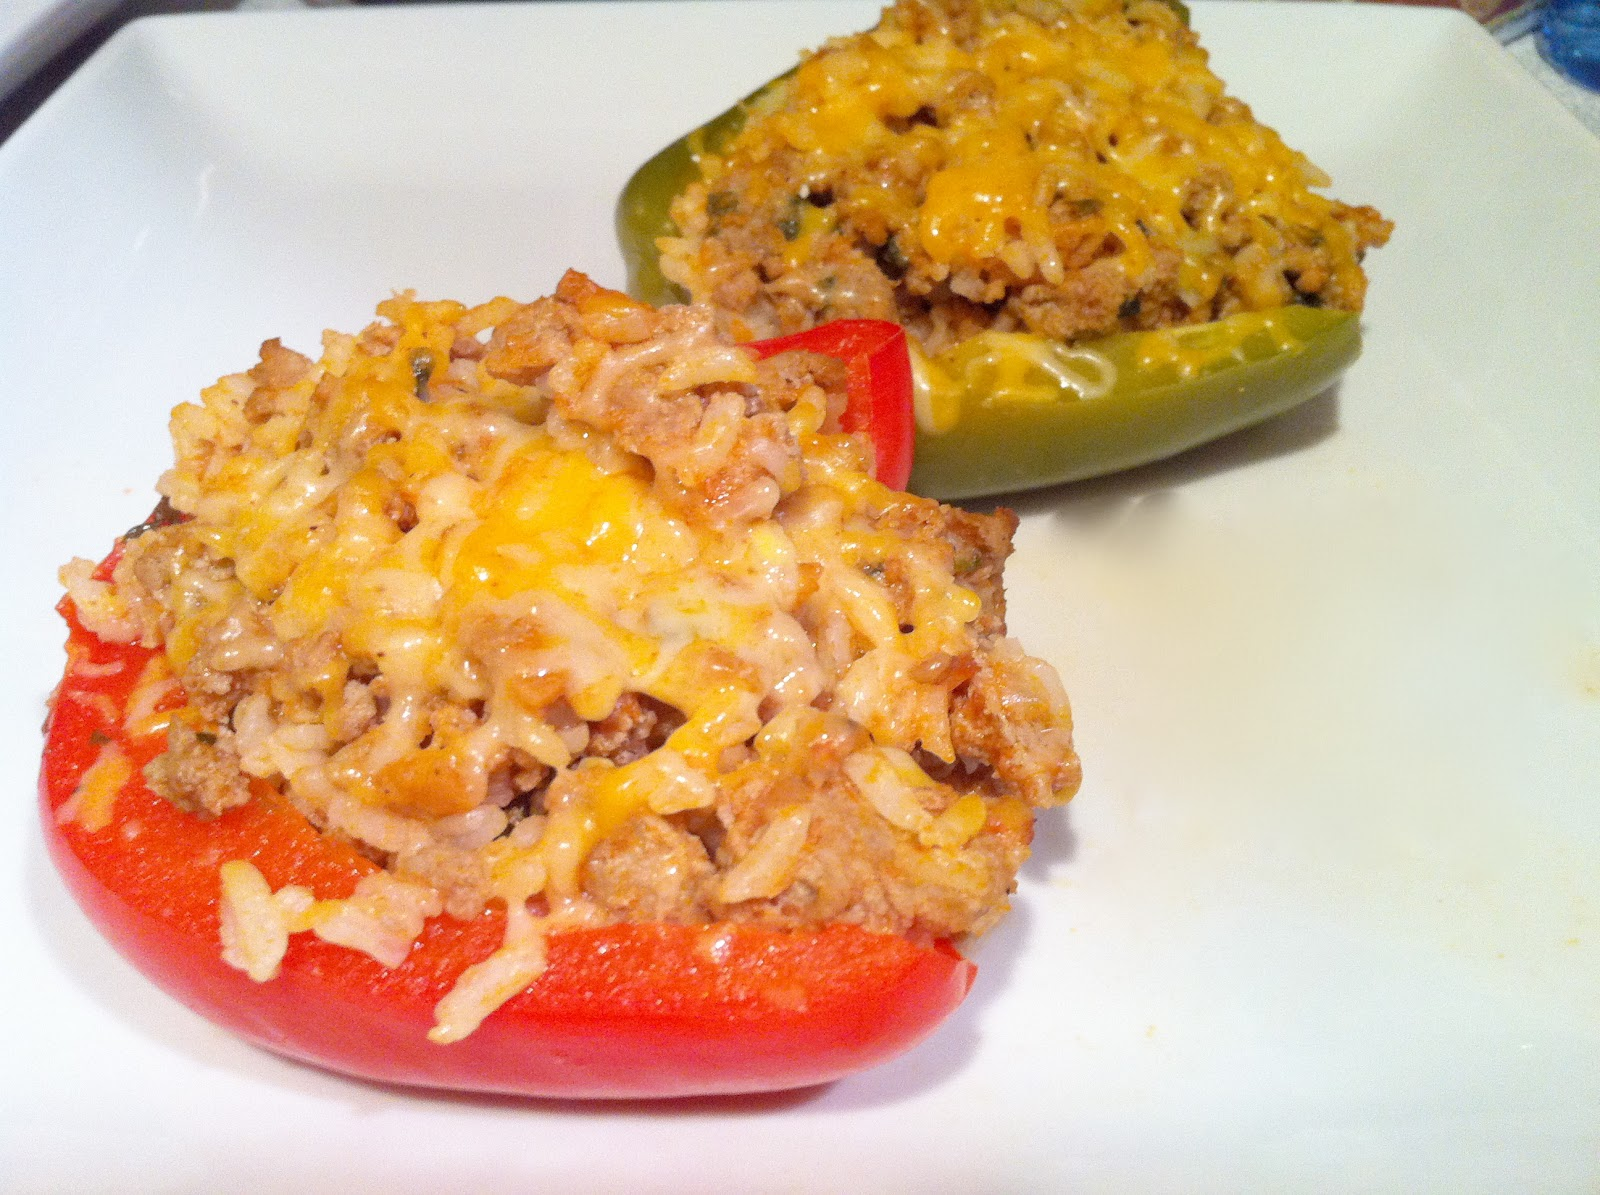 Hem and Her: Turkey Stuffed Peppers